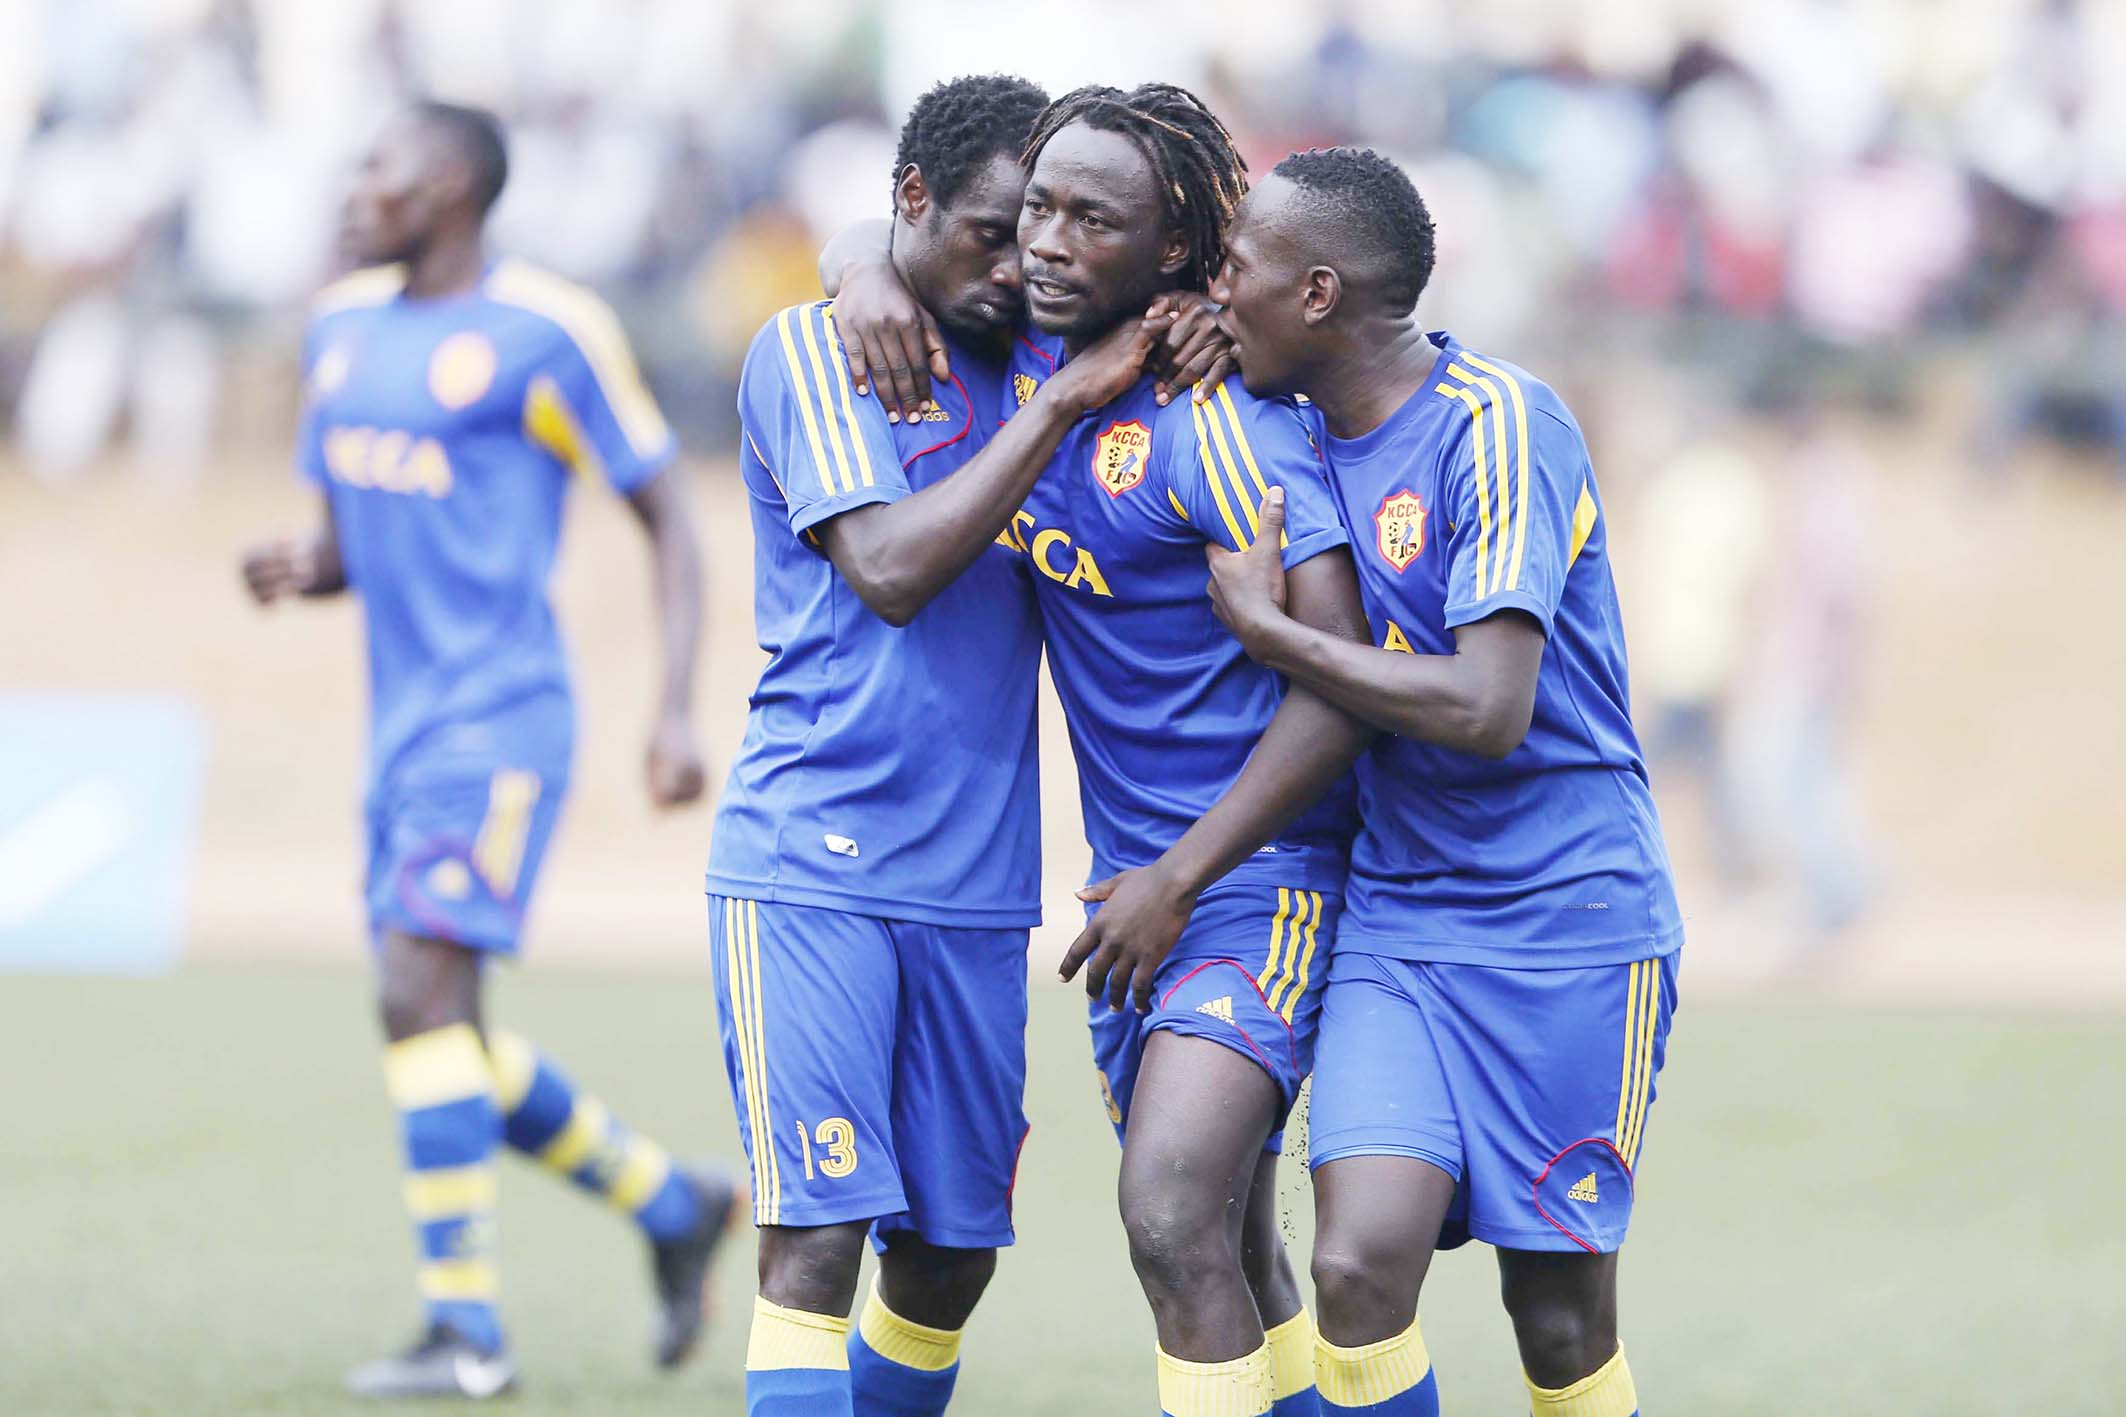 Brian Umony More fans, money and scandal as UPL reaches half-way stage ...